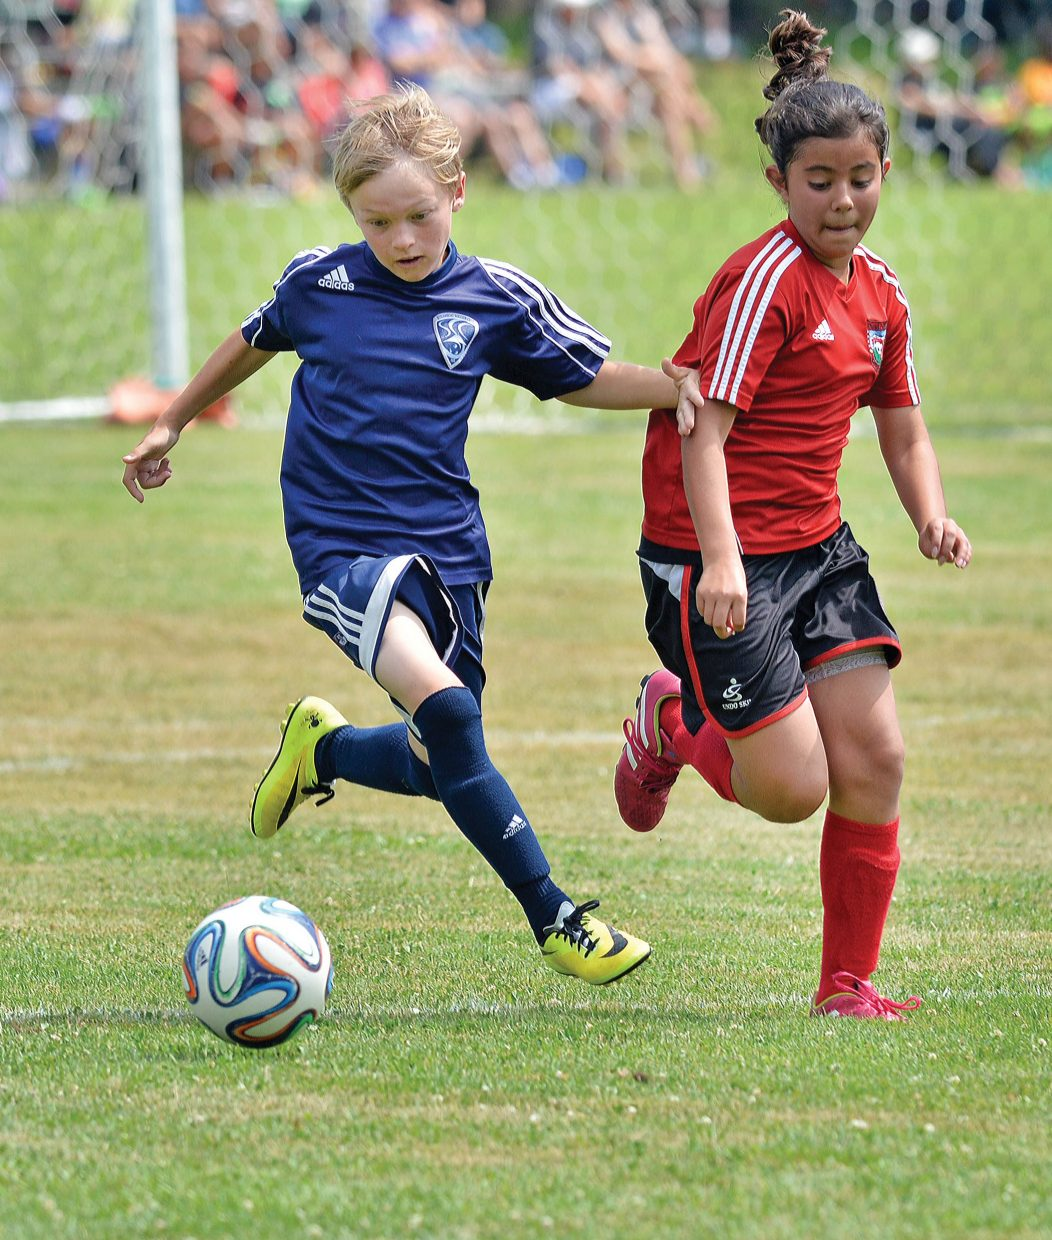 Ethan Spence, of the Steamboat Springs U12 Navy team, controls the ball Friday afternoon in a game against the Indos on the first day of the Steamboat Mountain Soccer Tournament. The Steamboat boys, just one of many teams playing in this weekend's tournament, topped the Indos by a final score of 9-6.